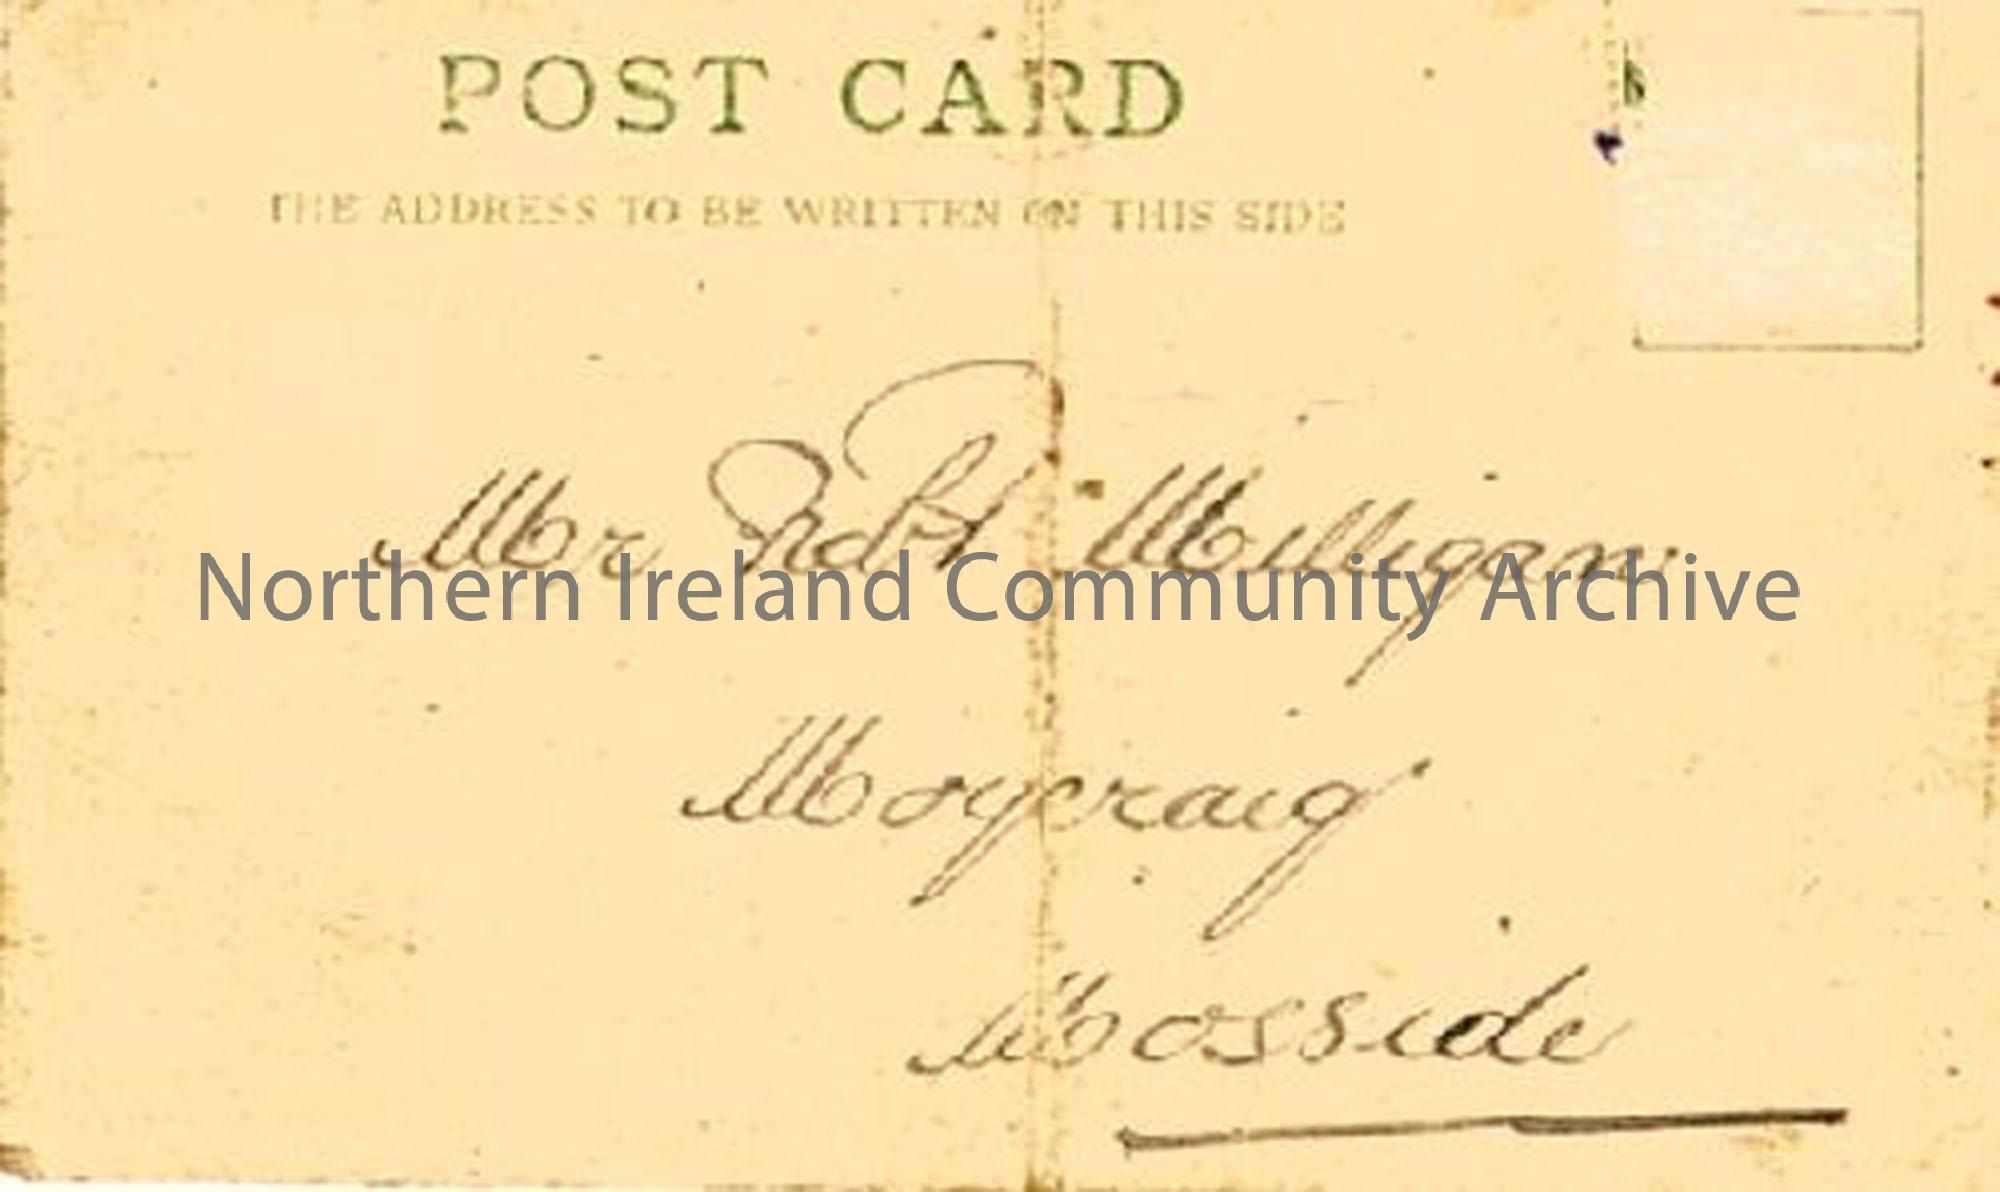 Postcard addressed to Robert Mulligan, Moycraig, Mosside (6659)